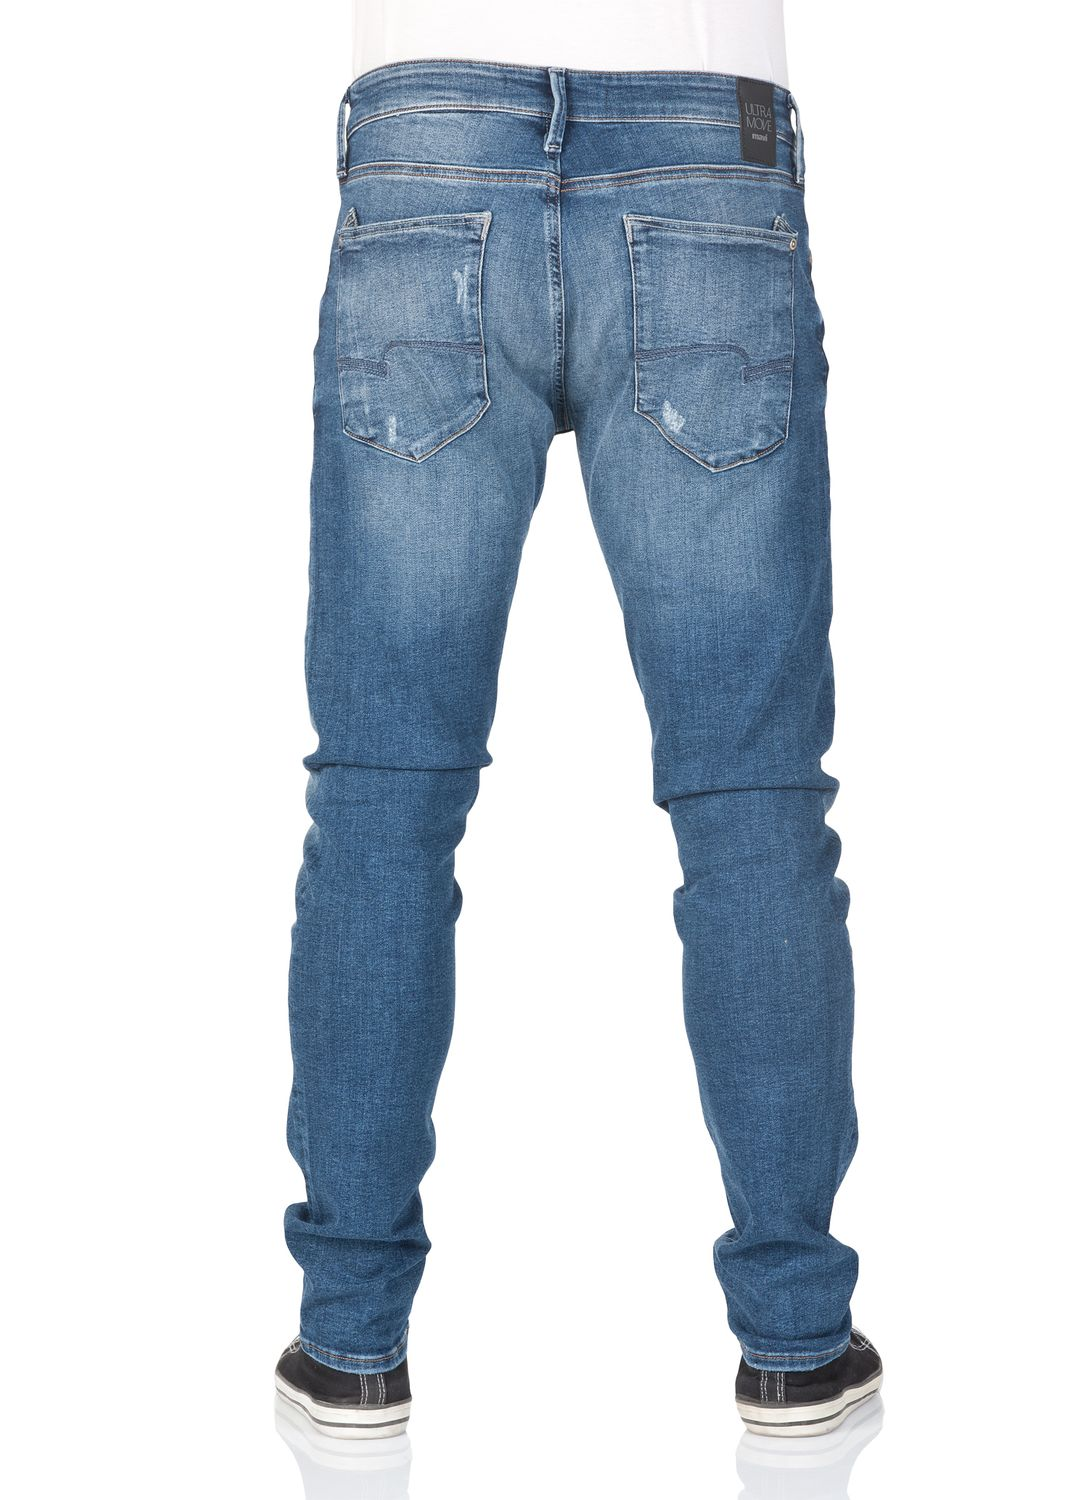 mavi-herren-jeans-james-skinny-fit-blau-mid-brushed-ultra-move, 71.96 EUR @ jeans